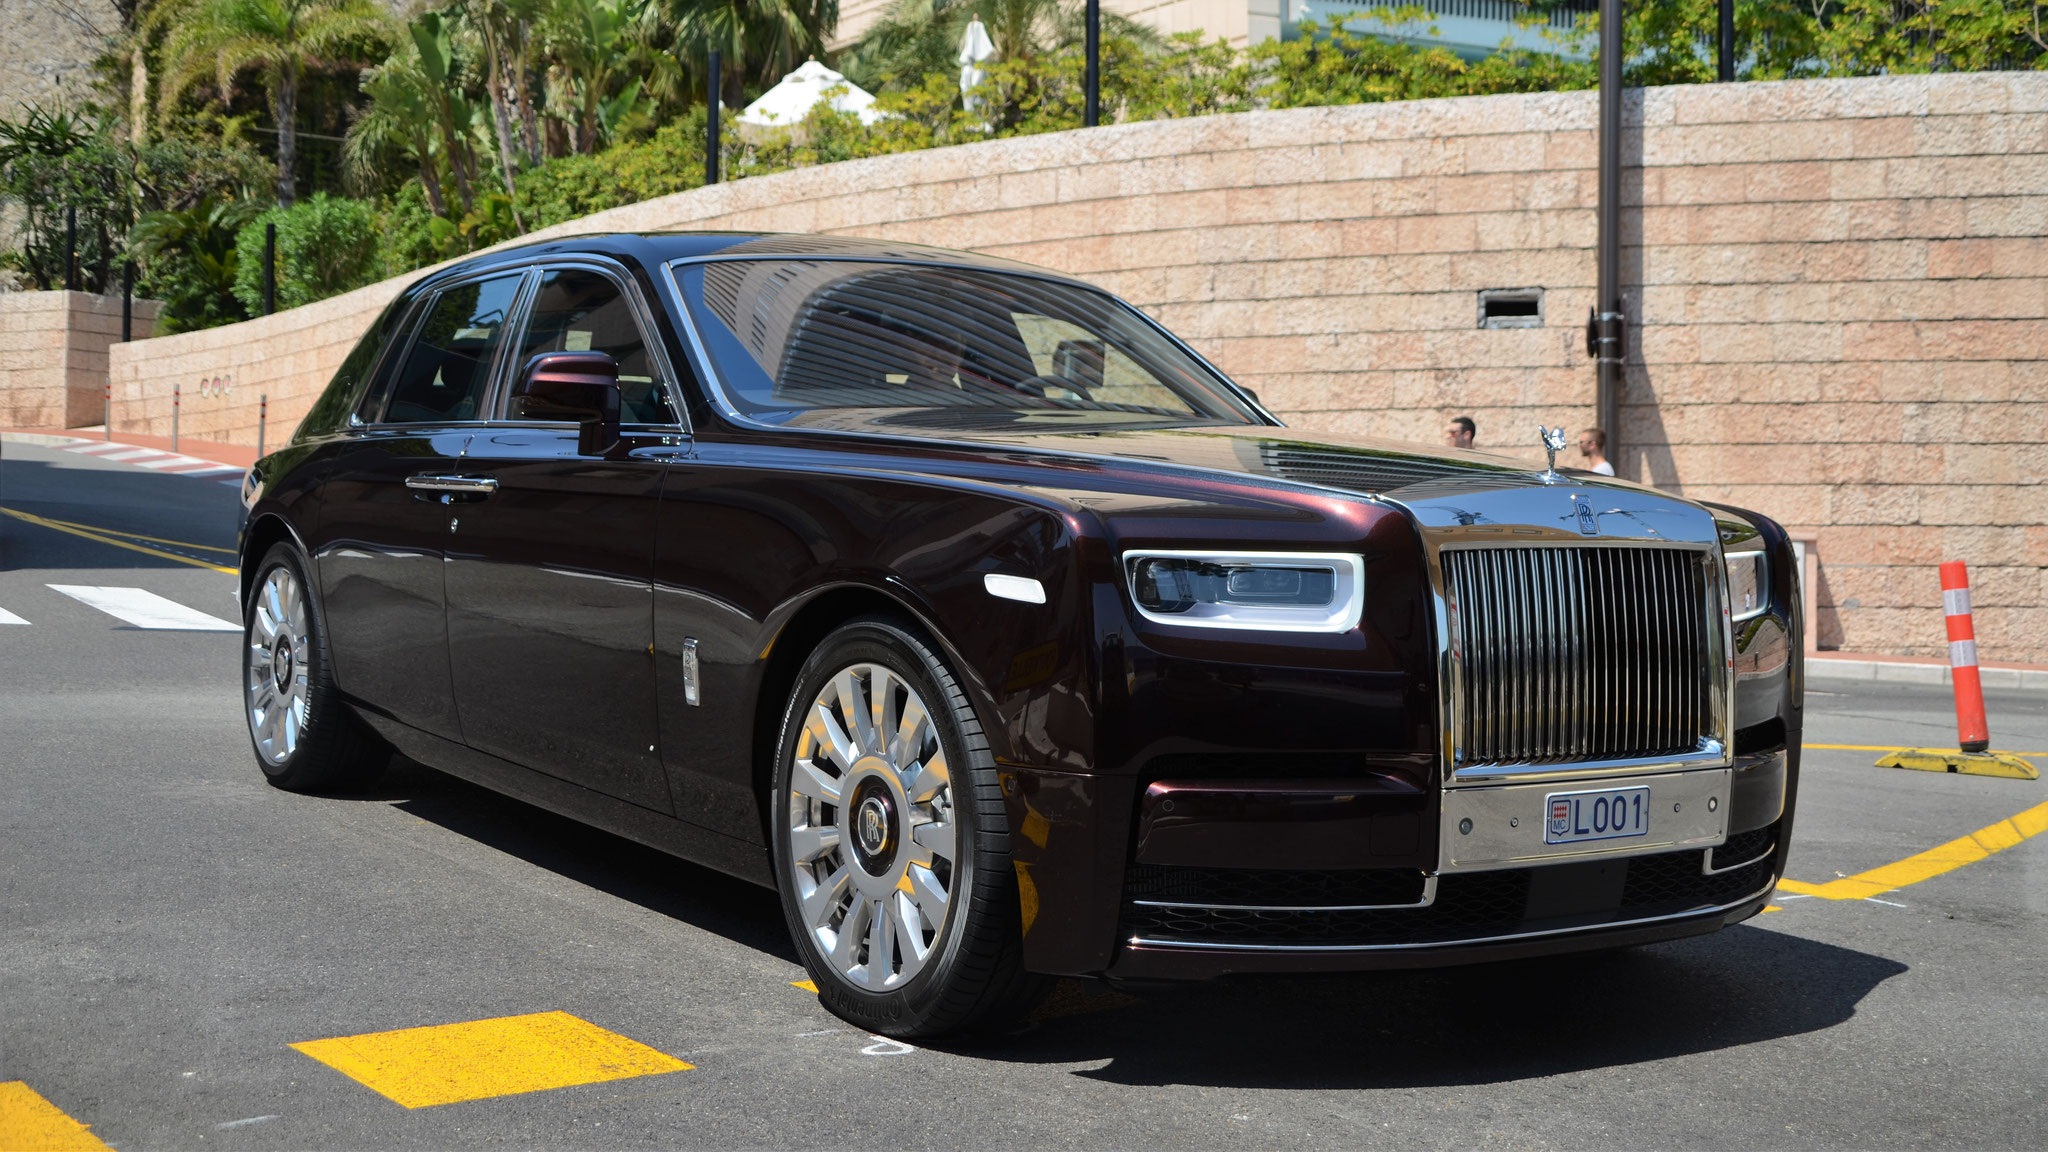 Rolls Royce Phantom - L001 (MC)